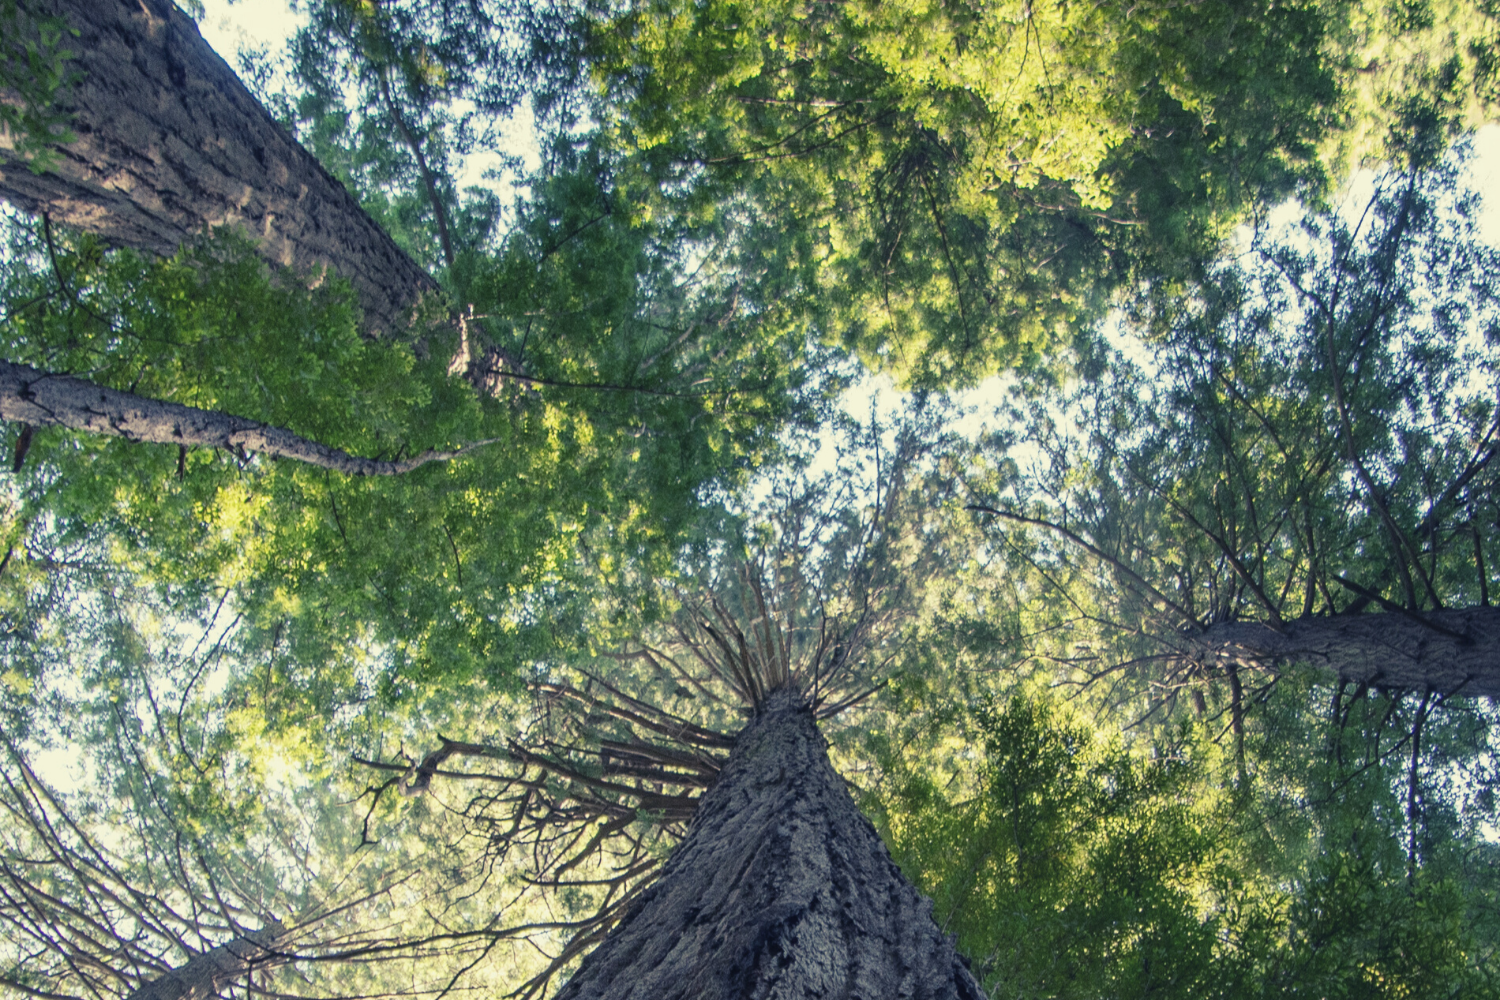 A view up an extreme tall free, along it's bark and toward the branch in the distance